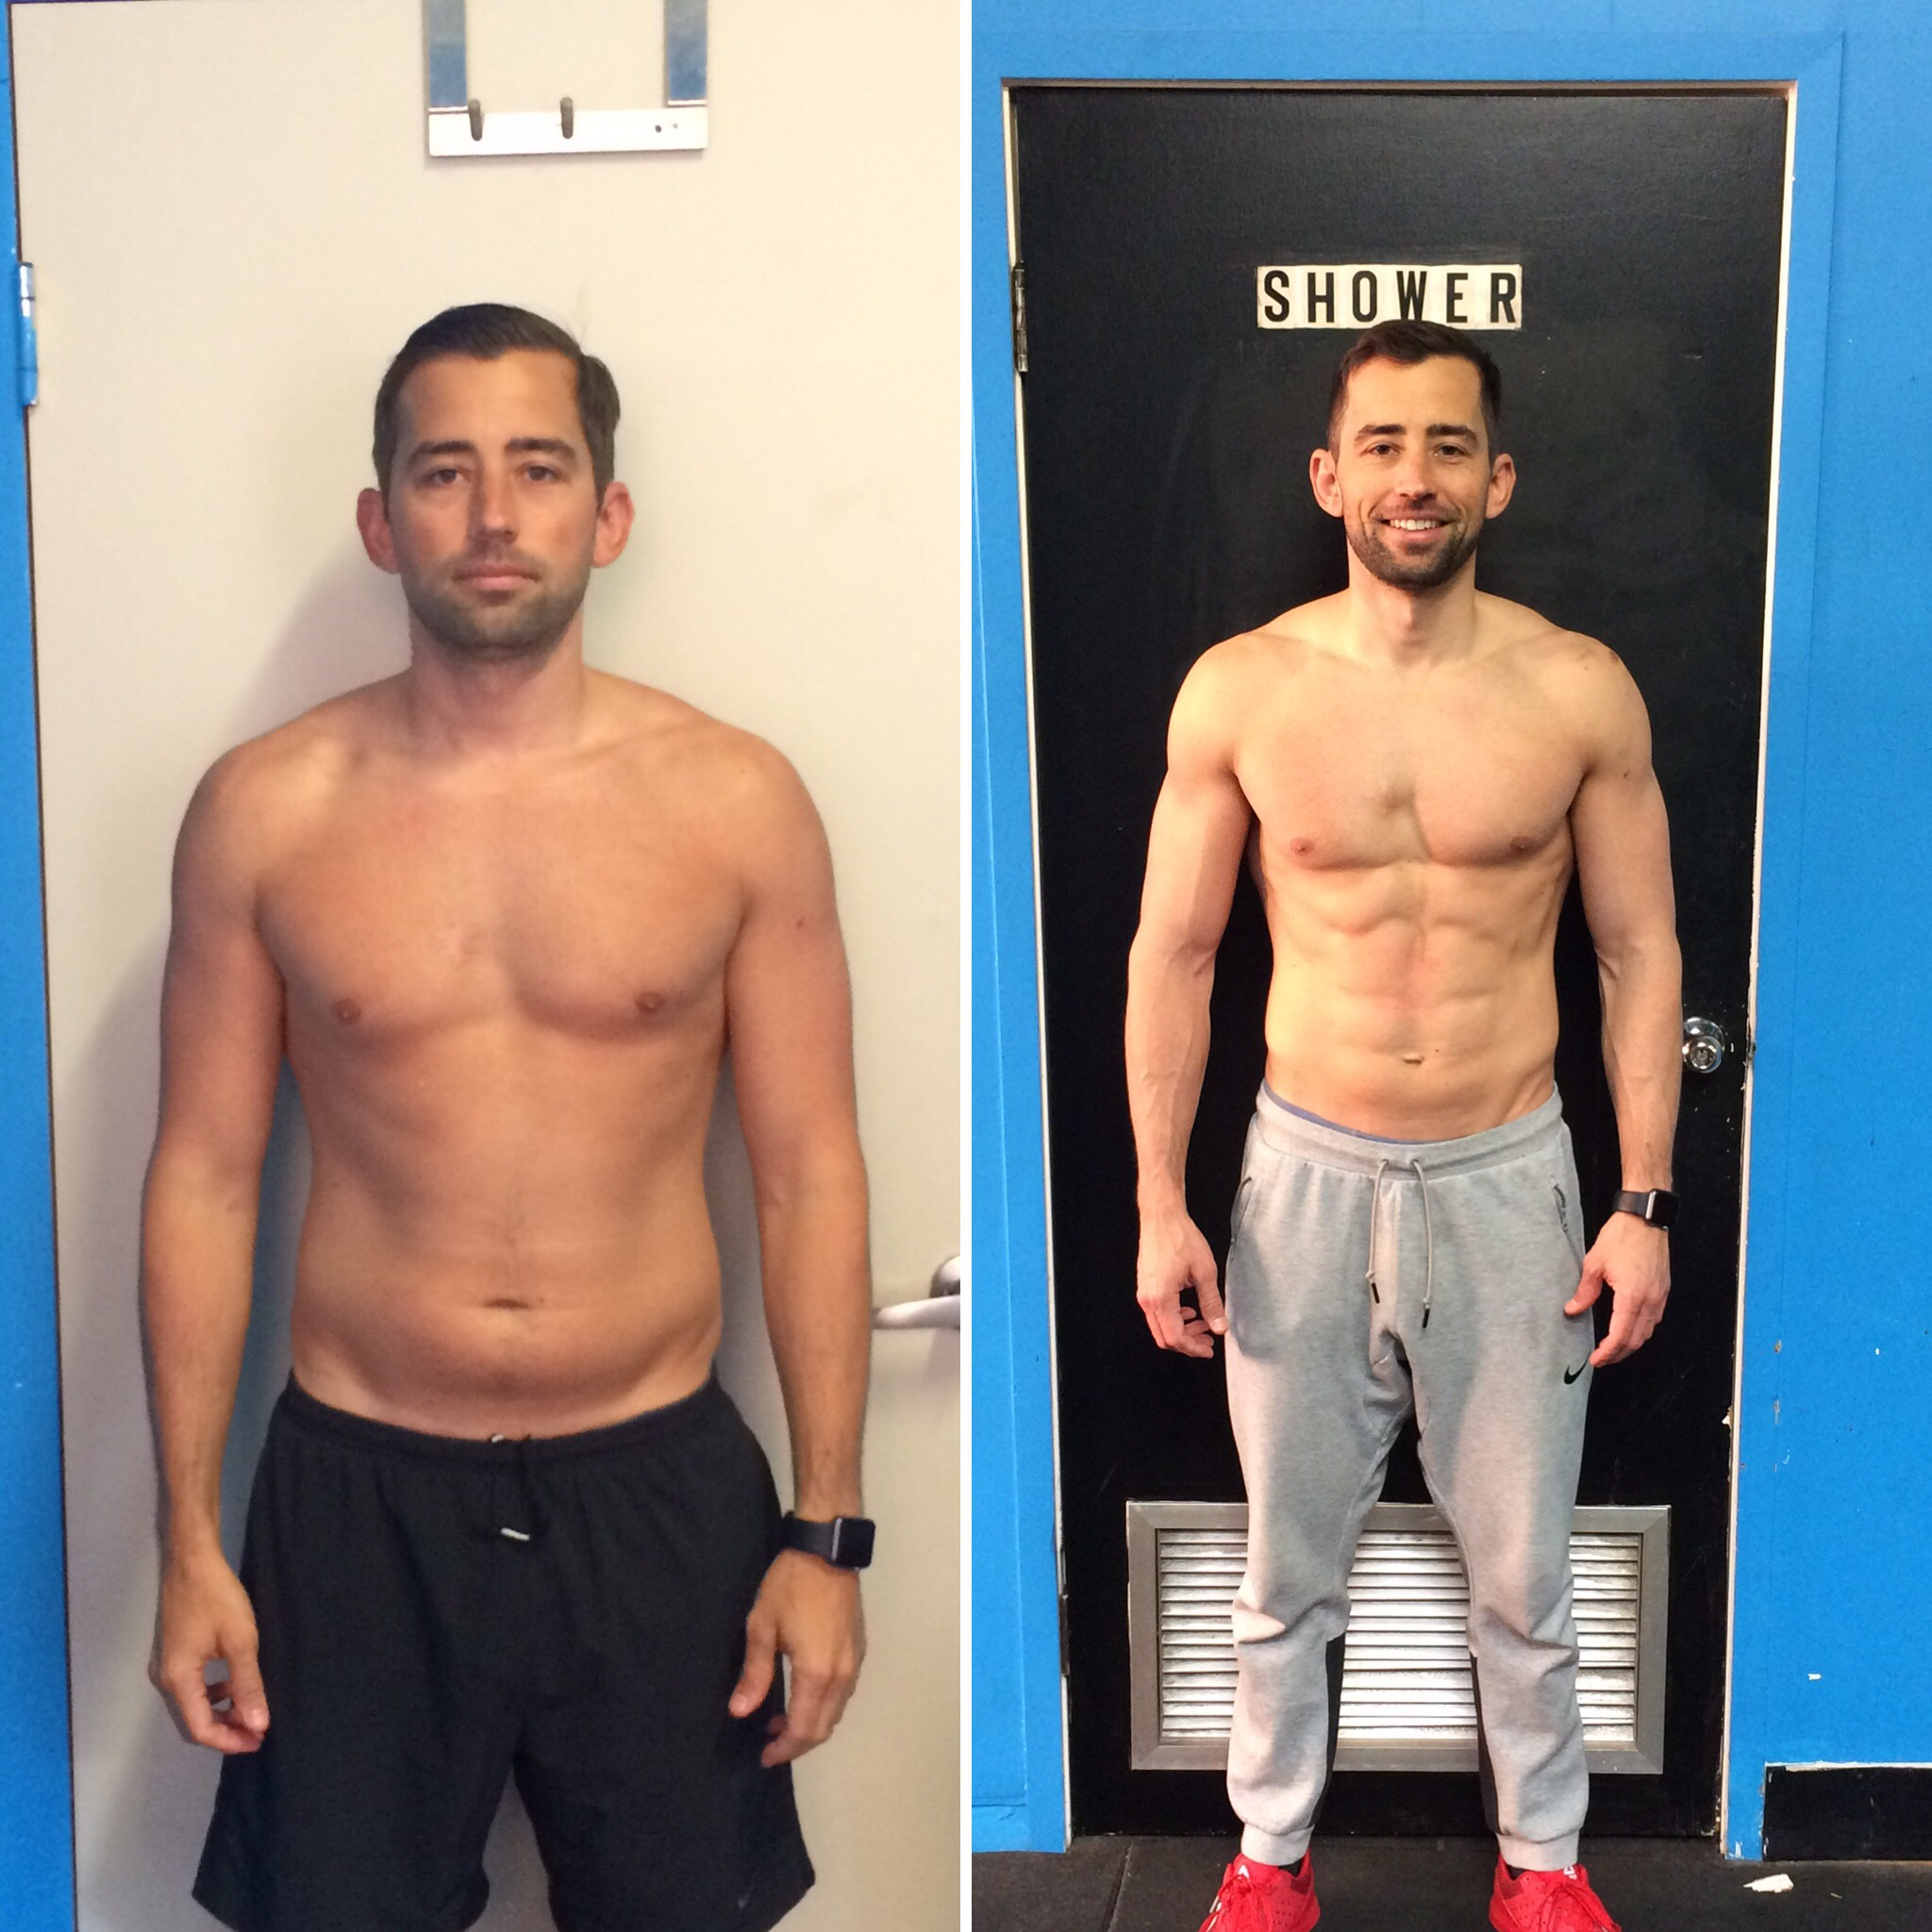 Eric went from 16.6% body fat to 8.0% in a little over 12 weeks